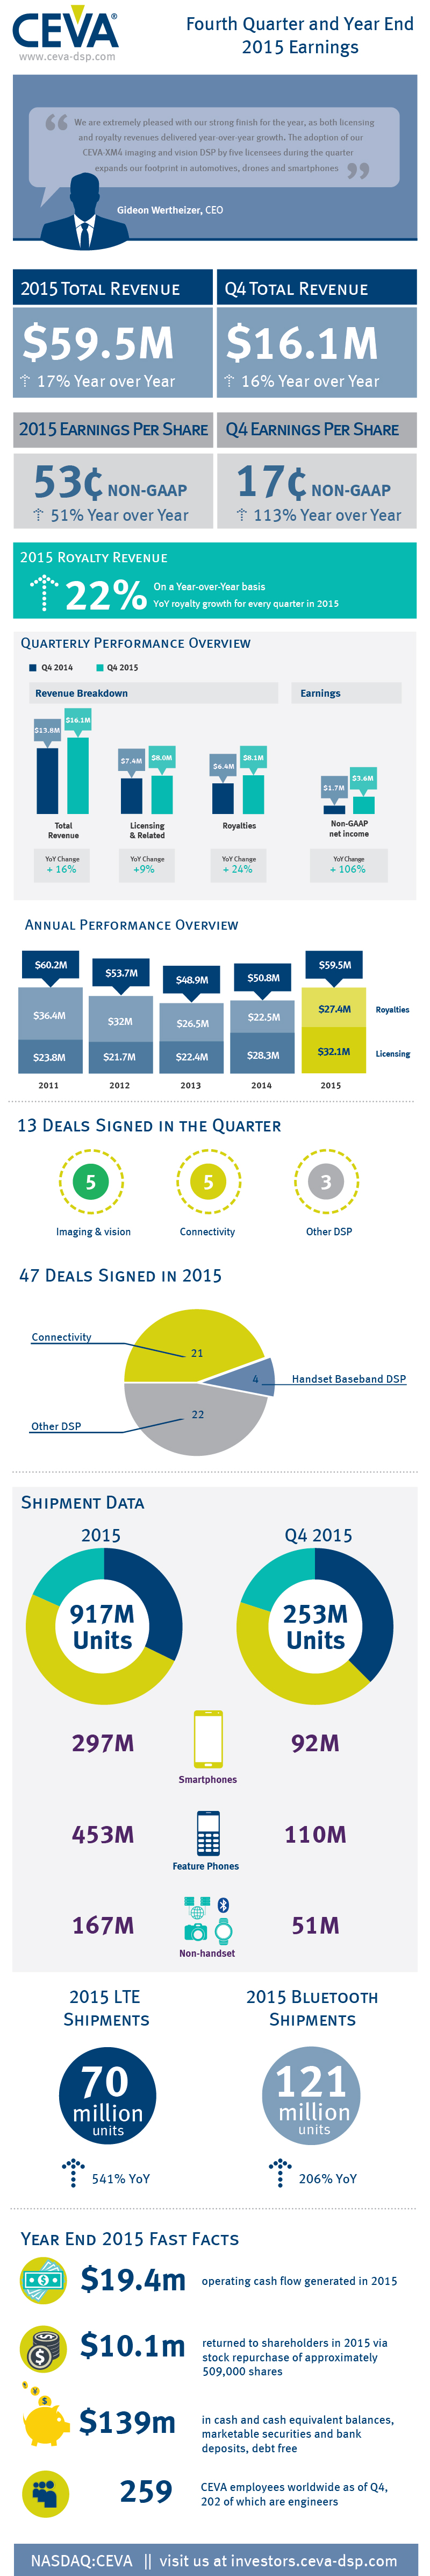 CEVA_Q4_2015_infographic_blog